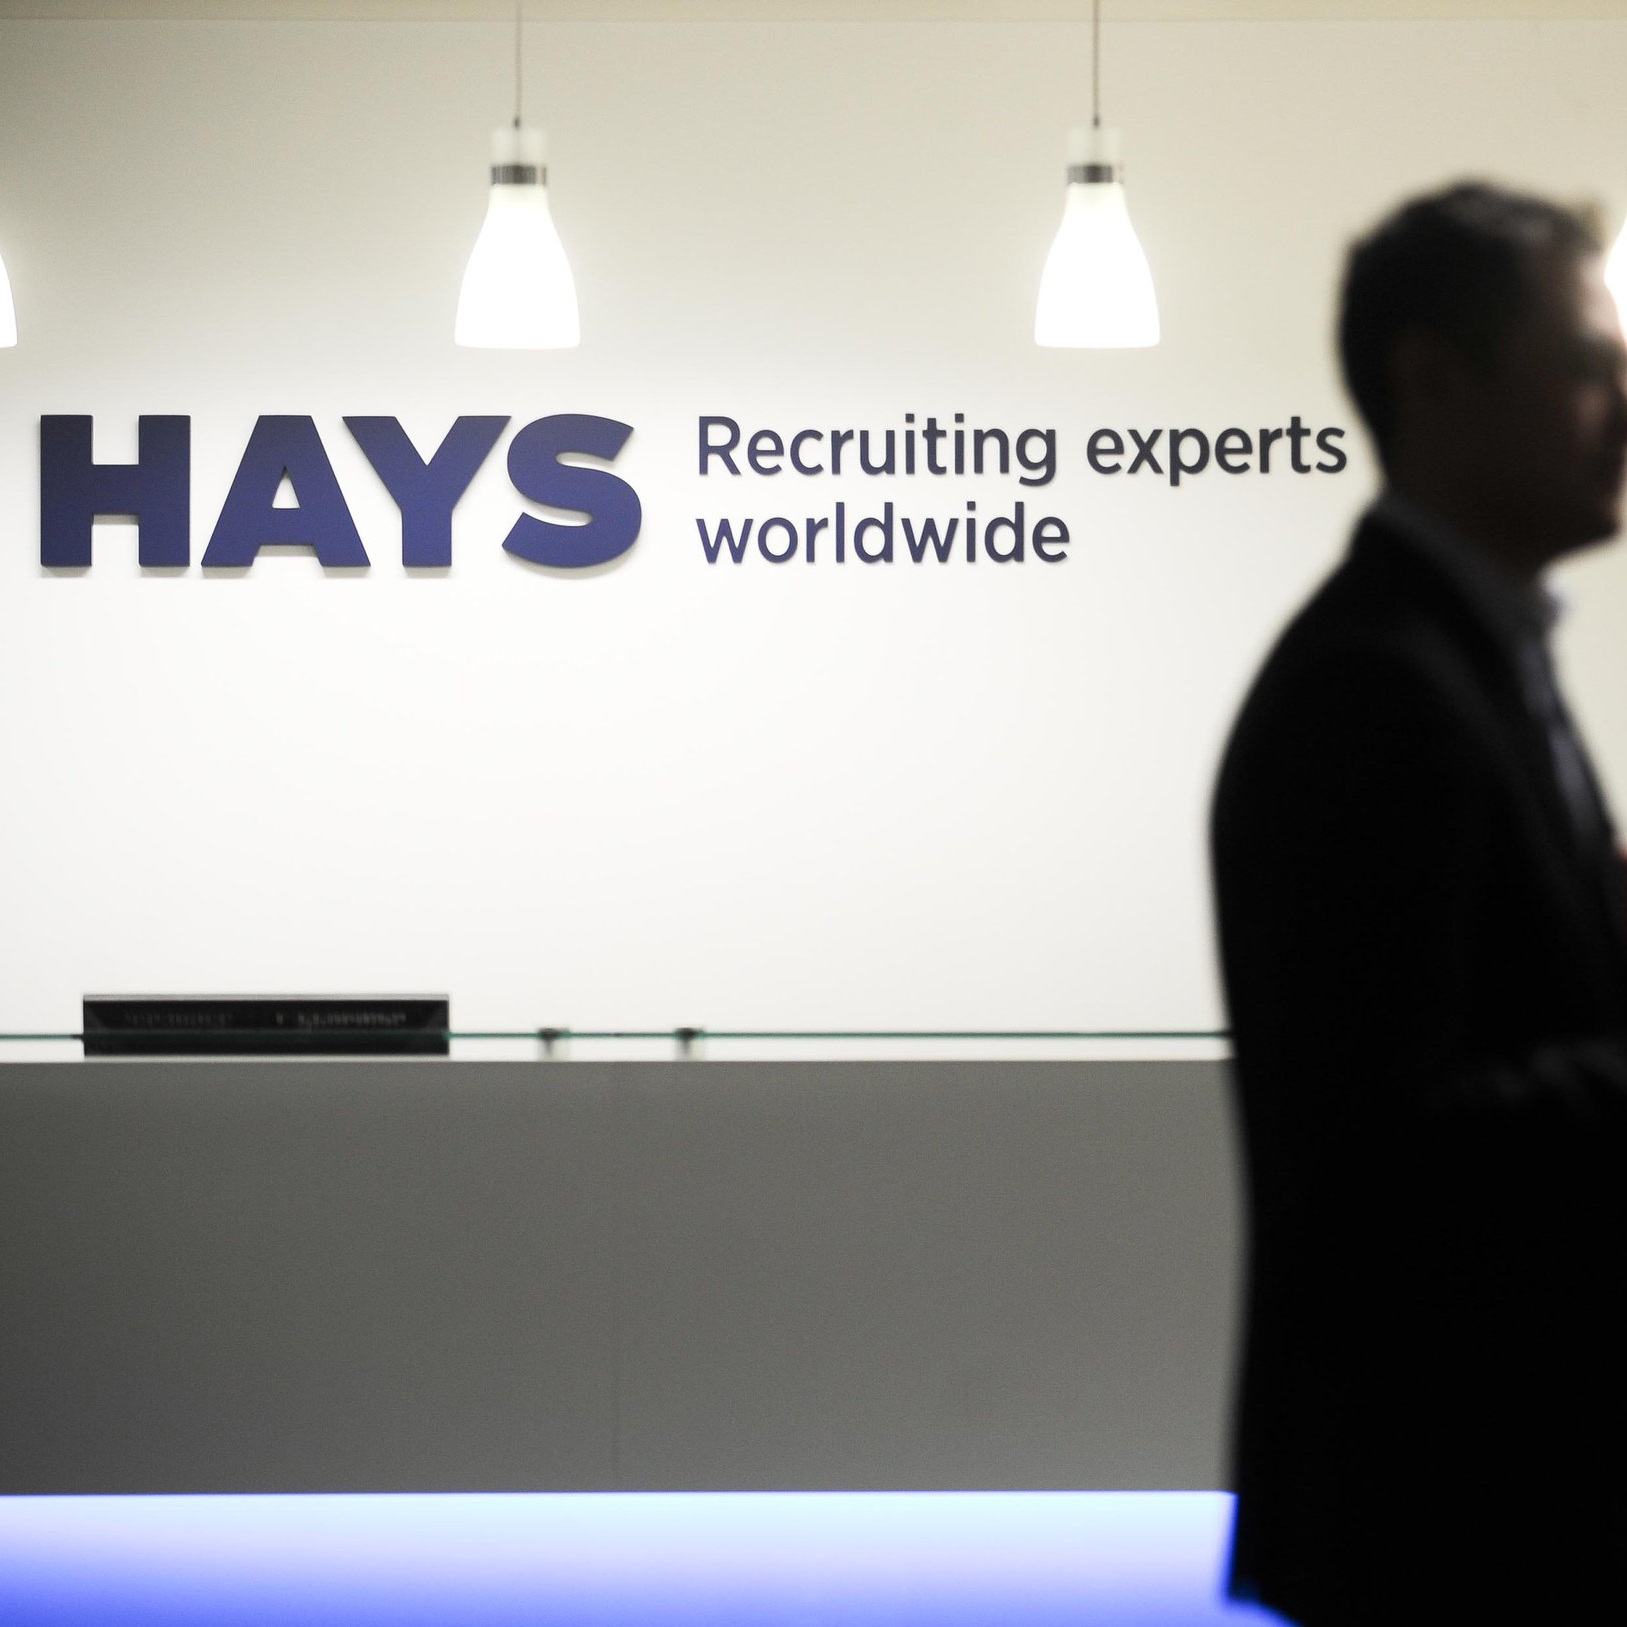 Hays: Thought leader in HR Recruitment - Hays is a worldwide reference in recruitment of skilled professionals.